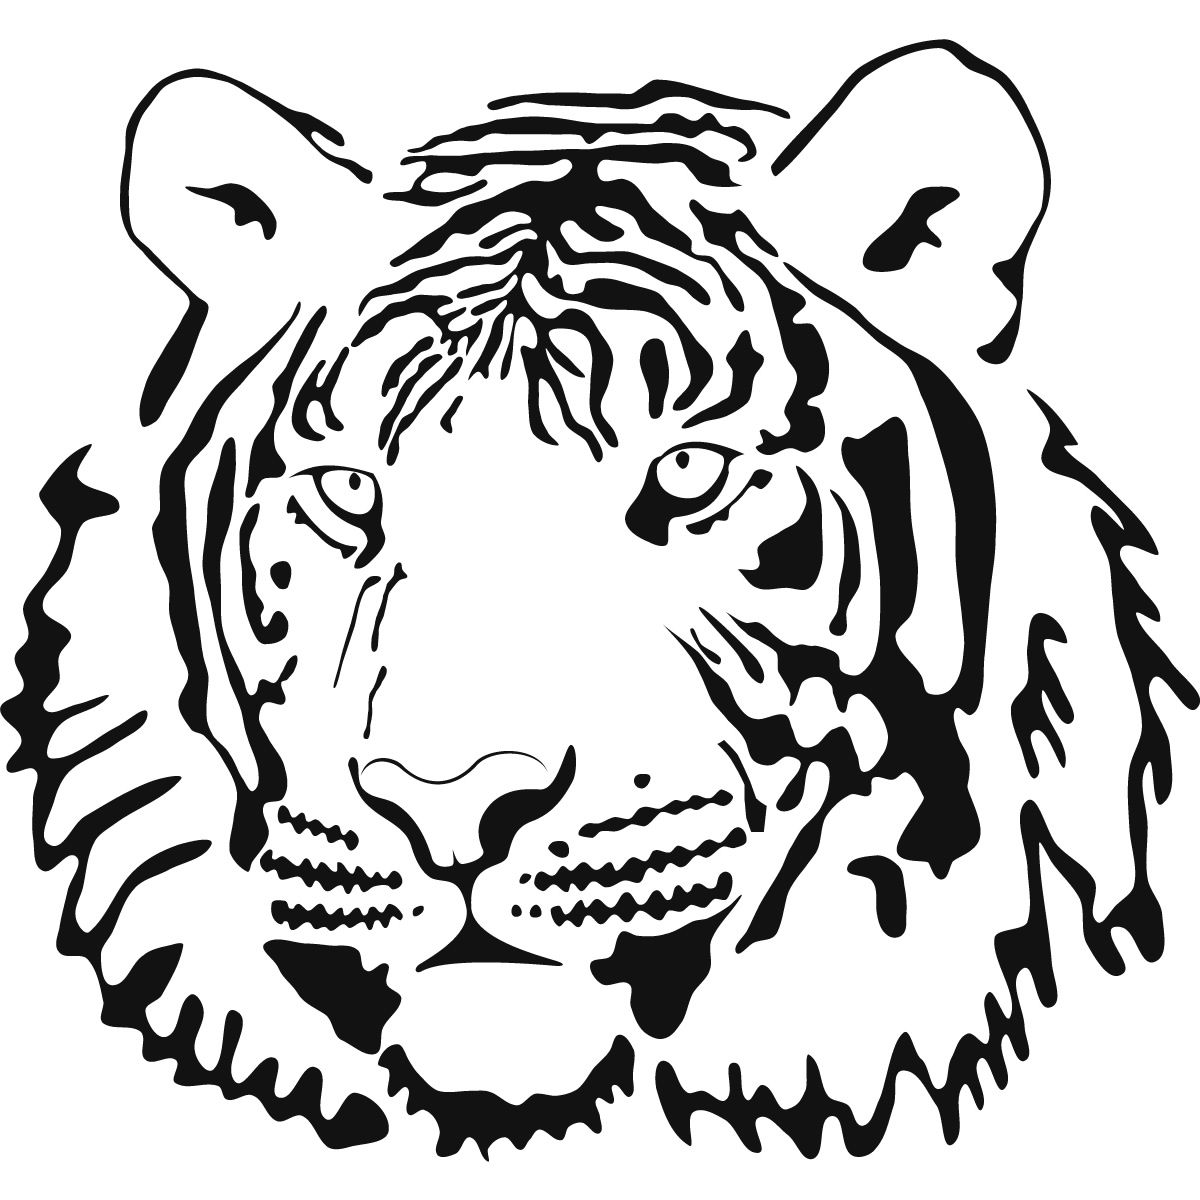 tiger face coloring page - Coloring Pages Tigers Print